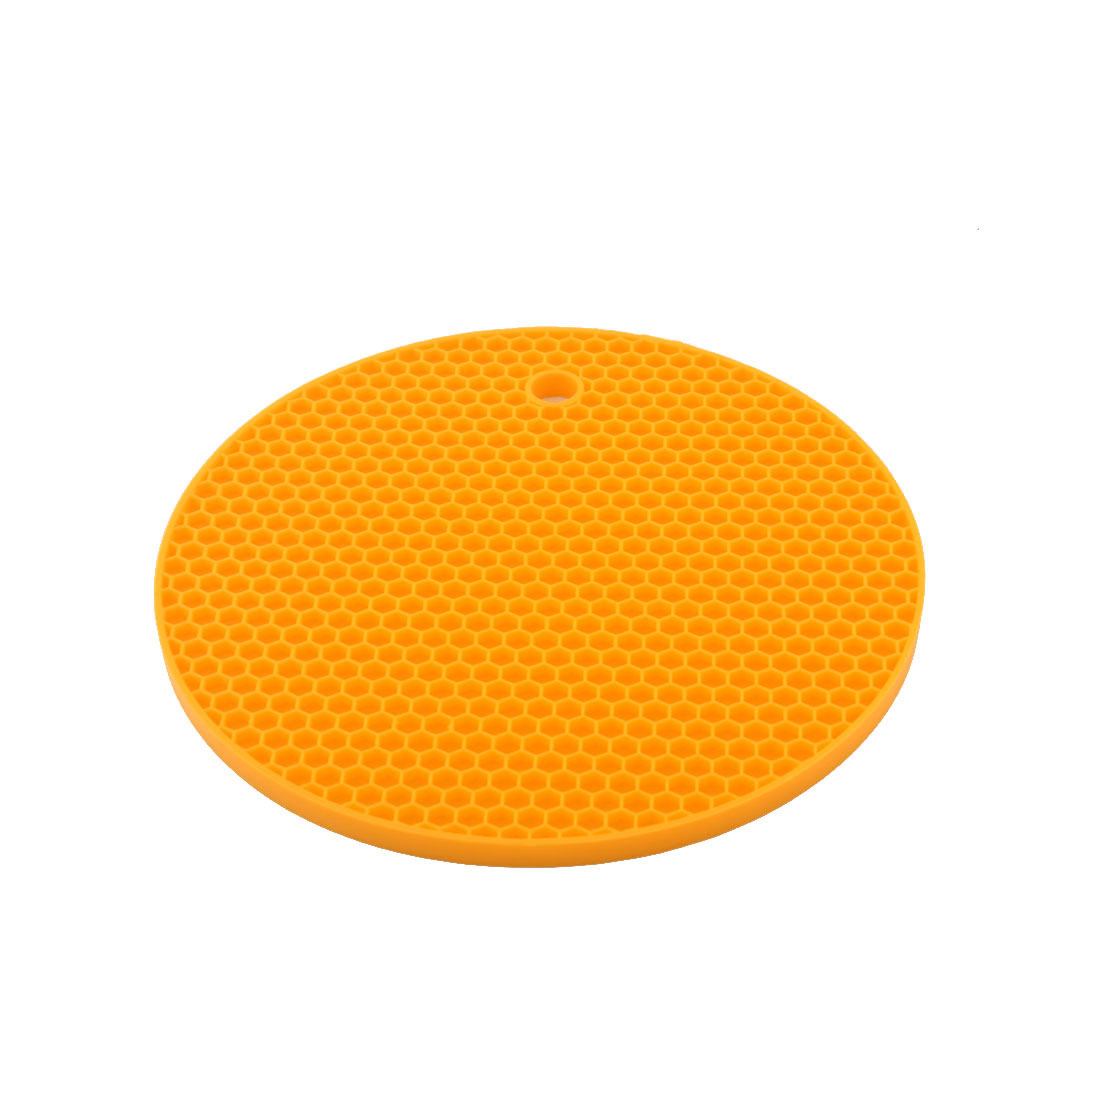 Silicone Honeycomb Design Table Heat Resistant Mat Cup Coaster Cushion Placemat Pad Yellow